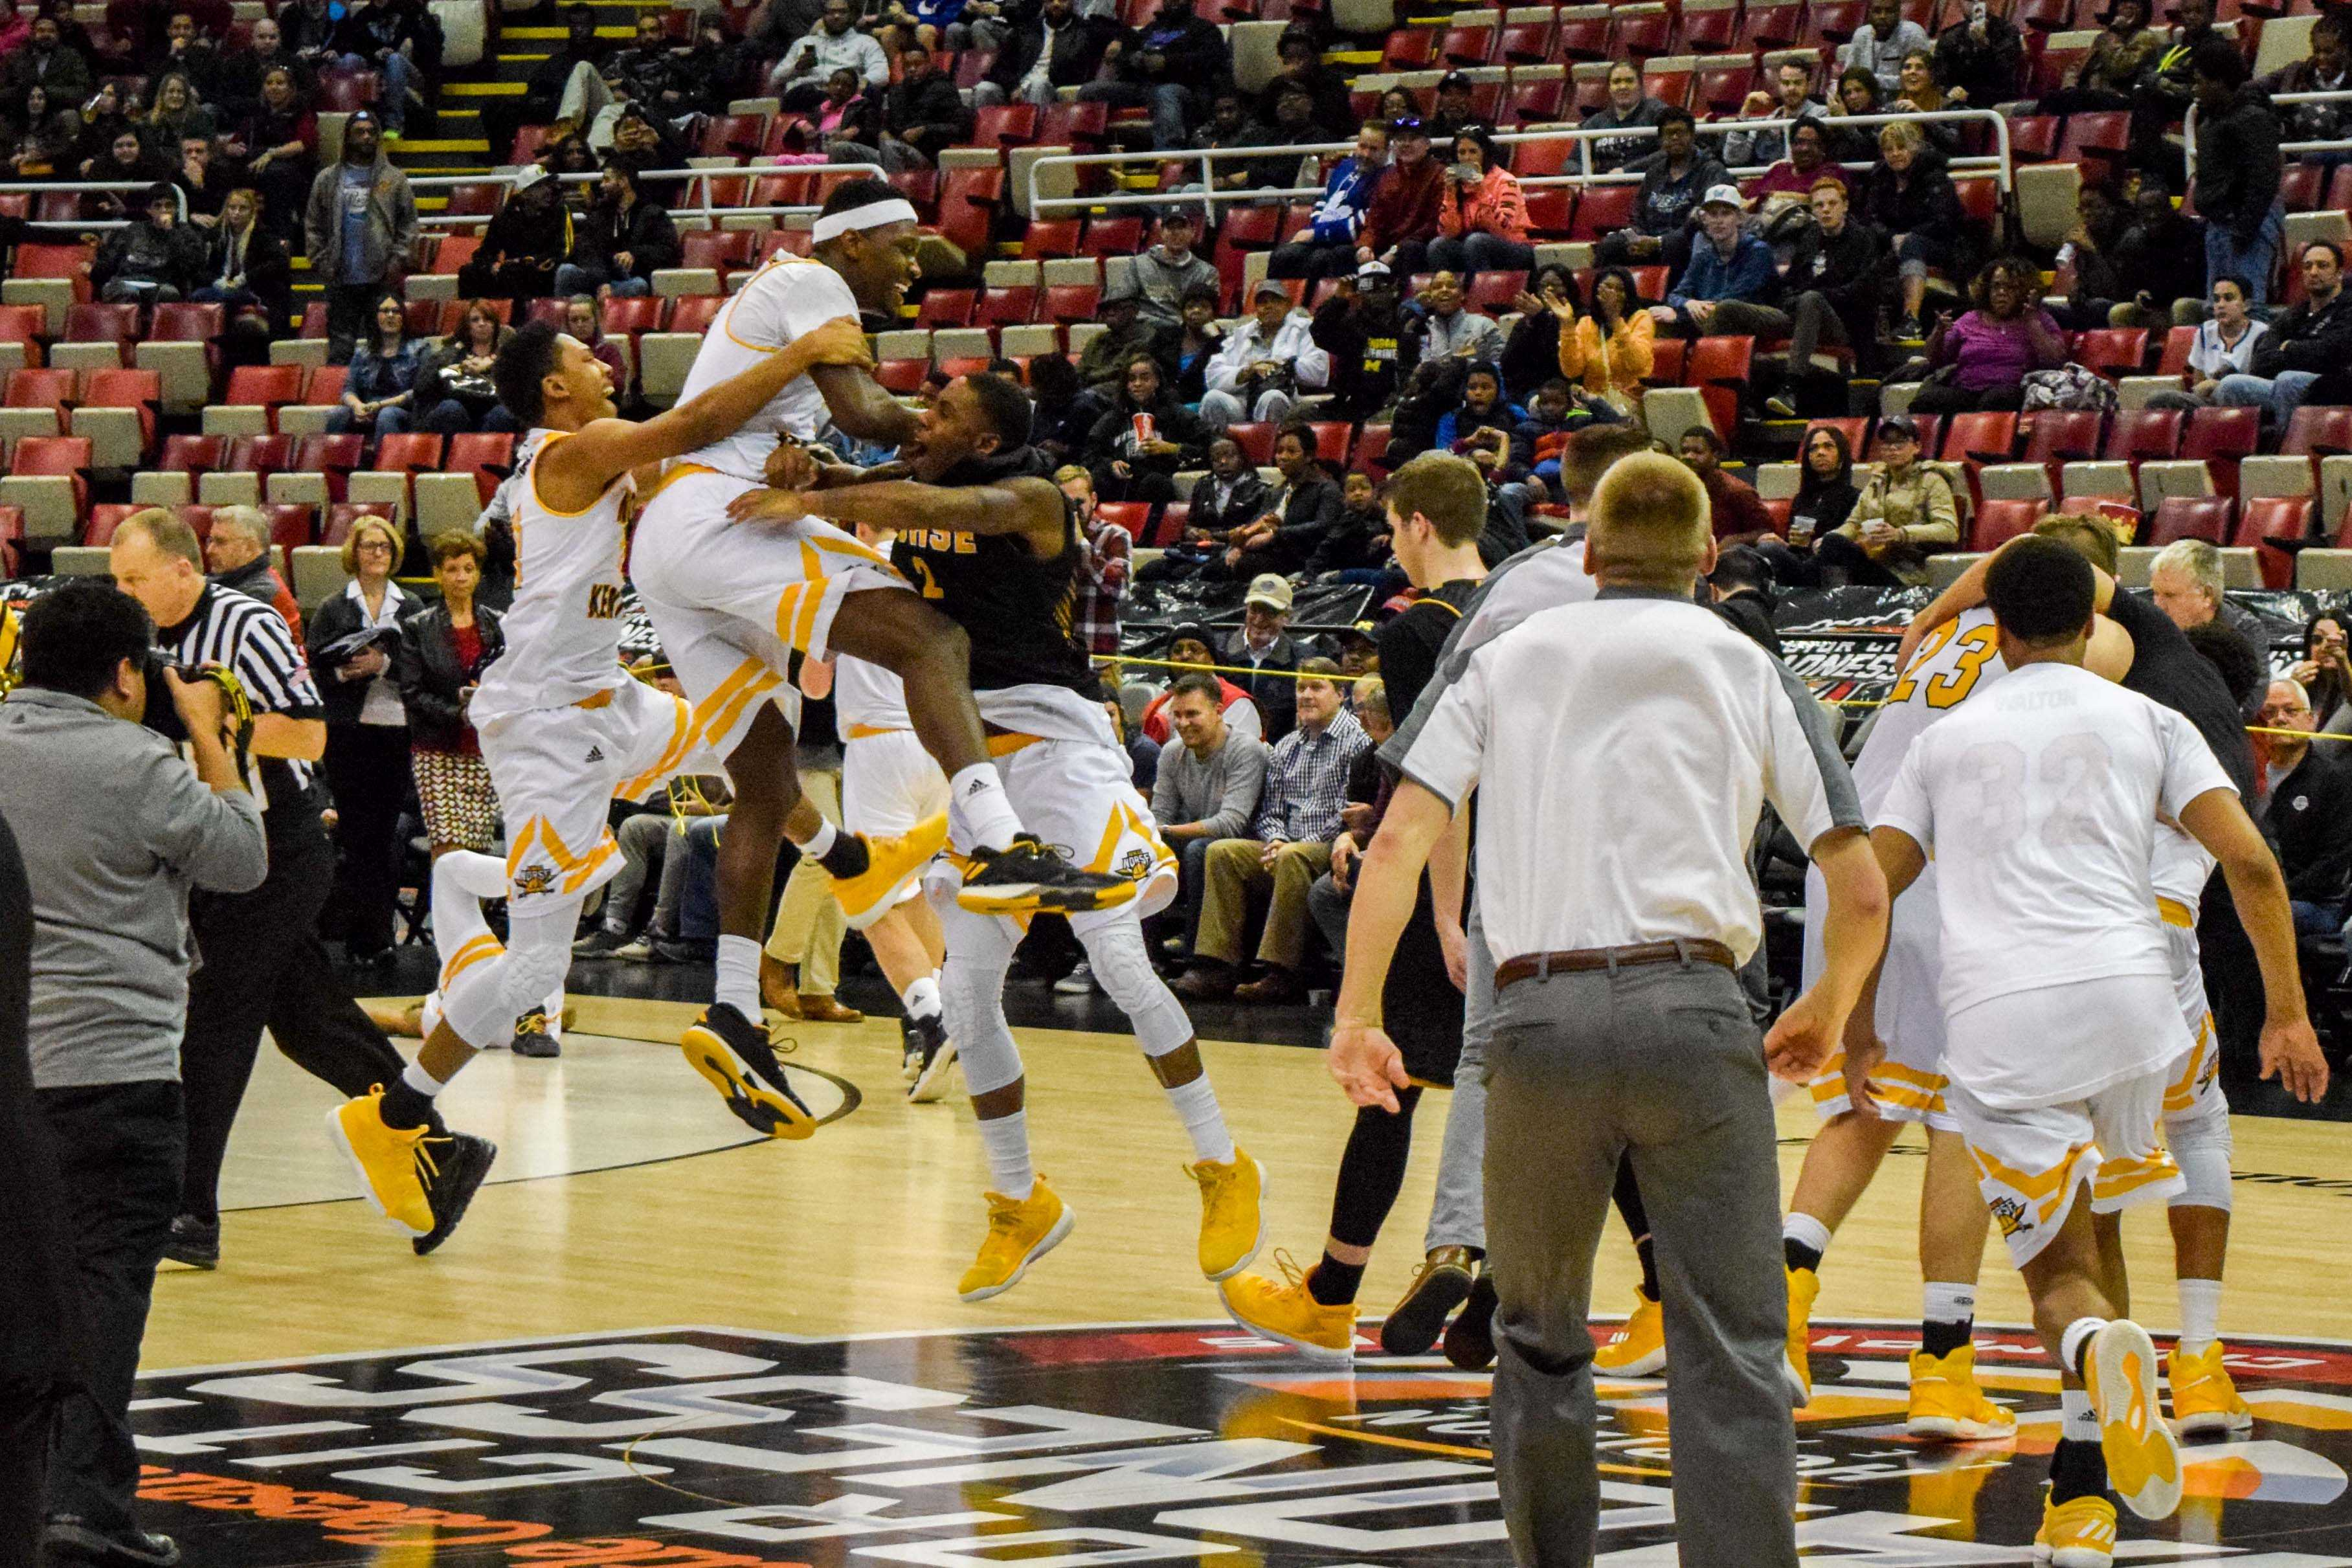 The NKU men's basketball team celebrates after winning the Horizon League championship.